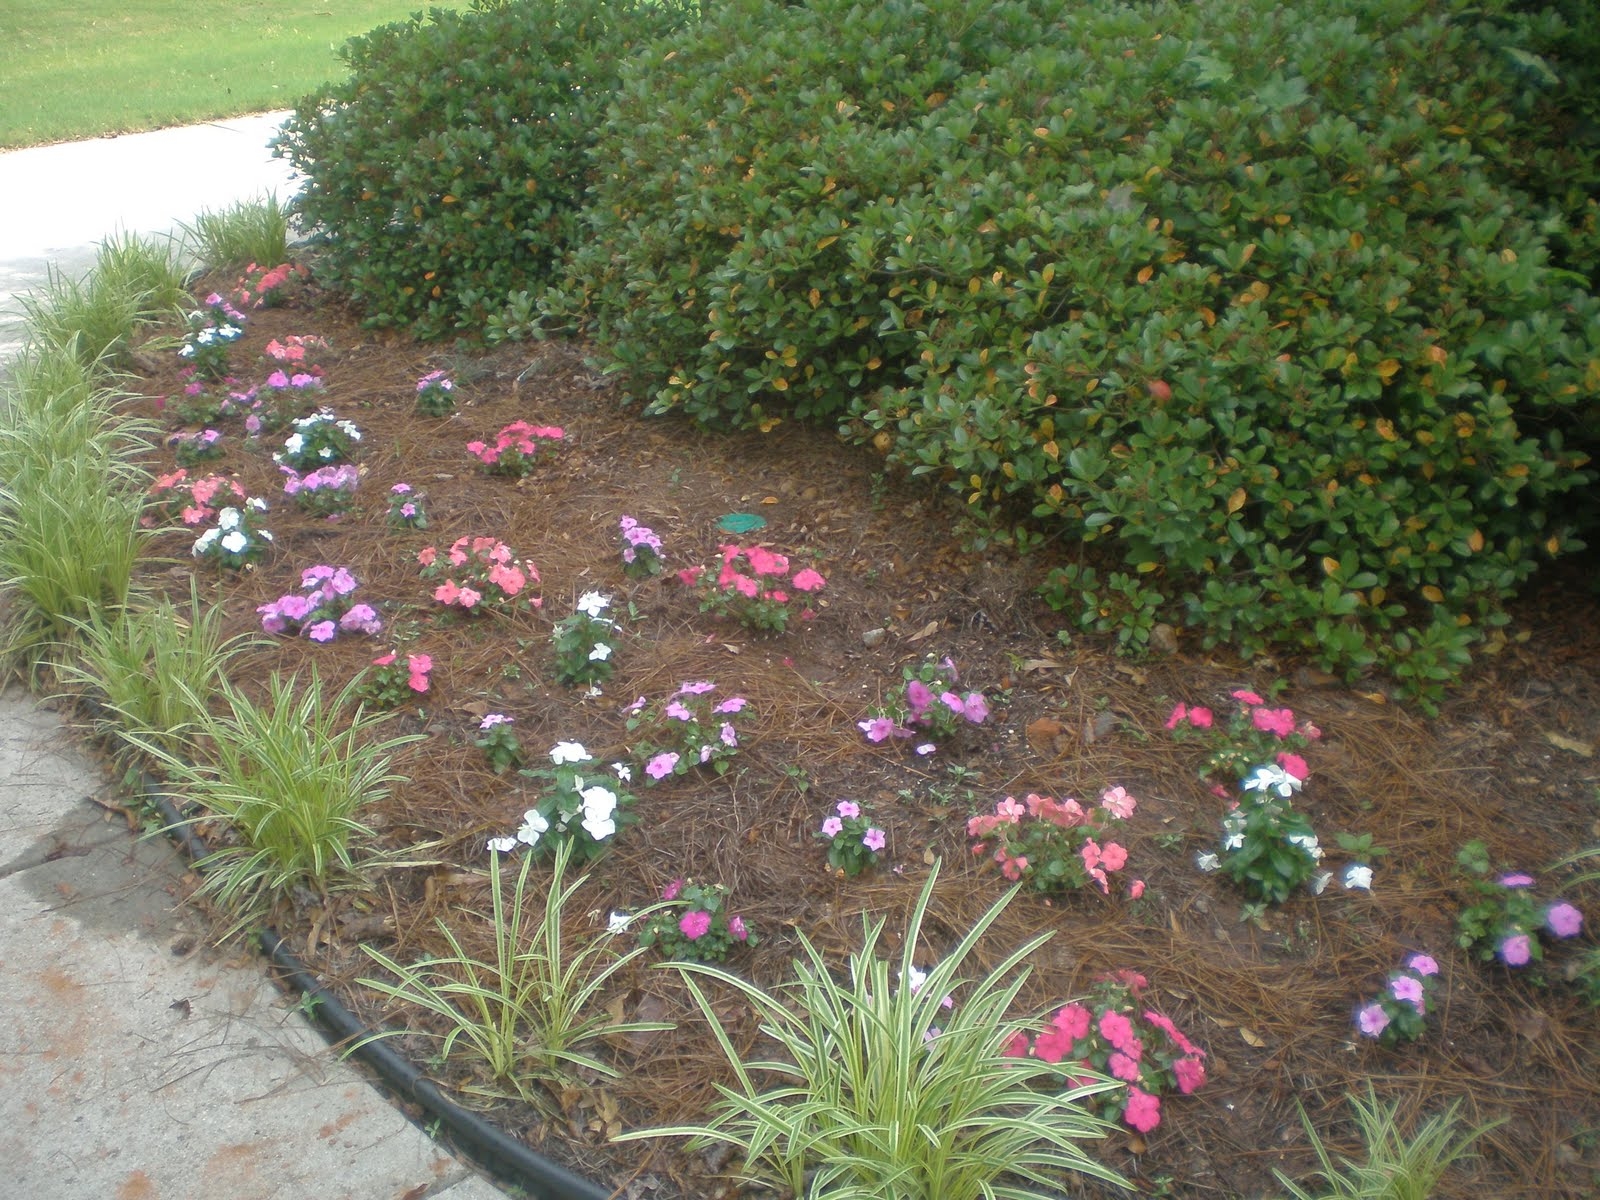 One woman 39 s story radiation and other spring activities for Flower bed in front of house